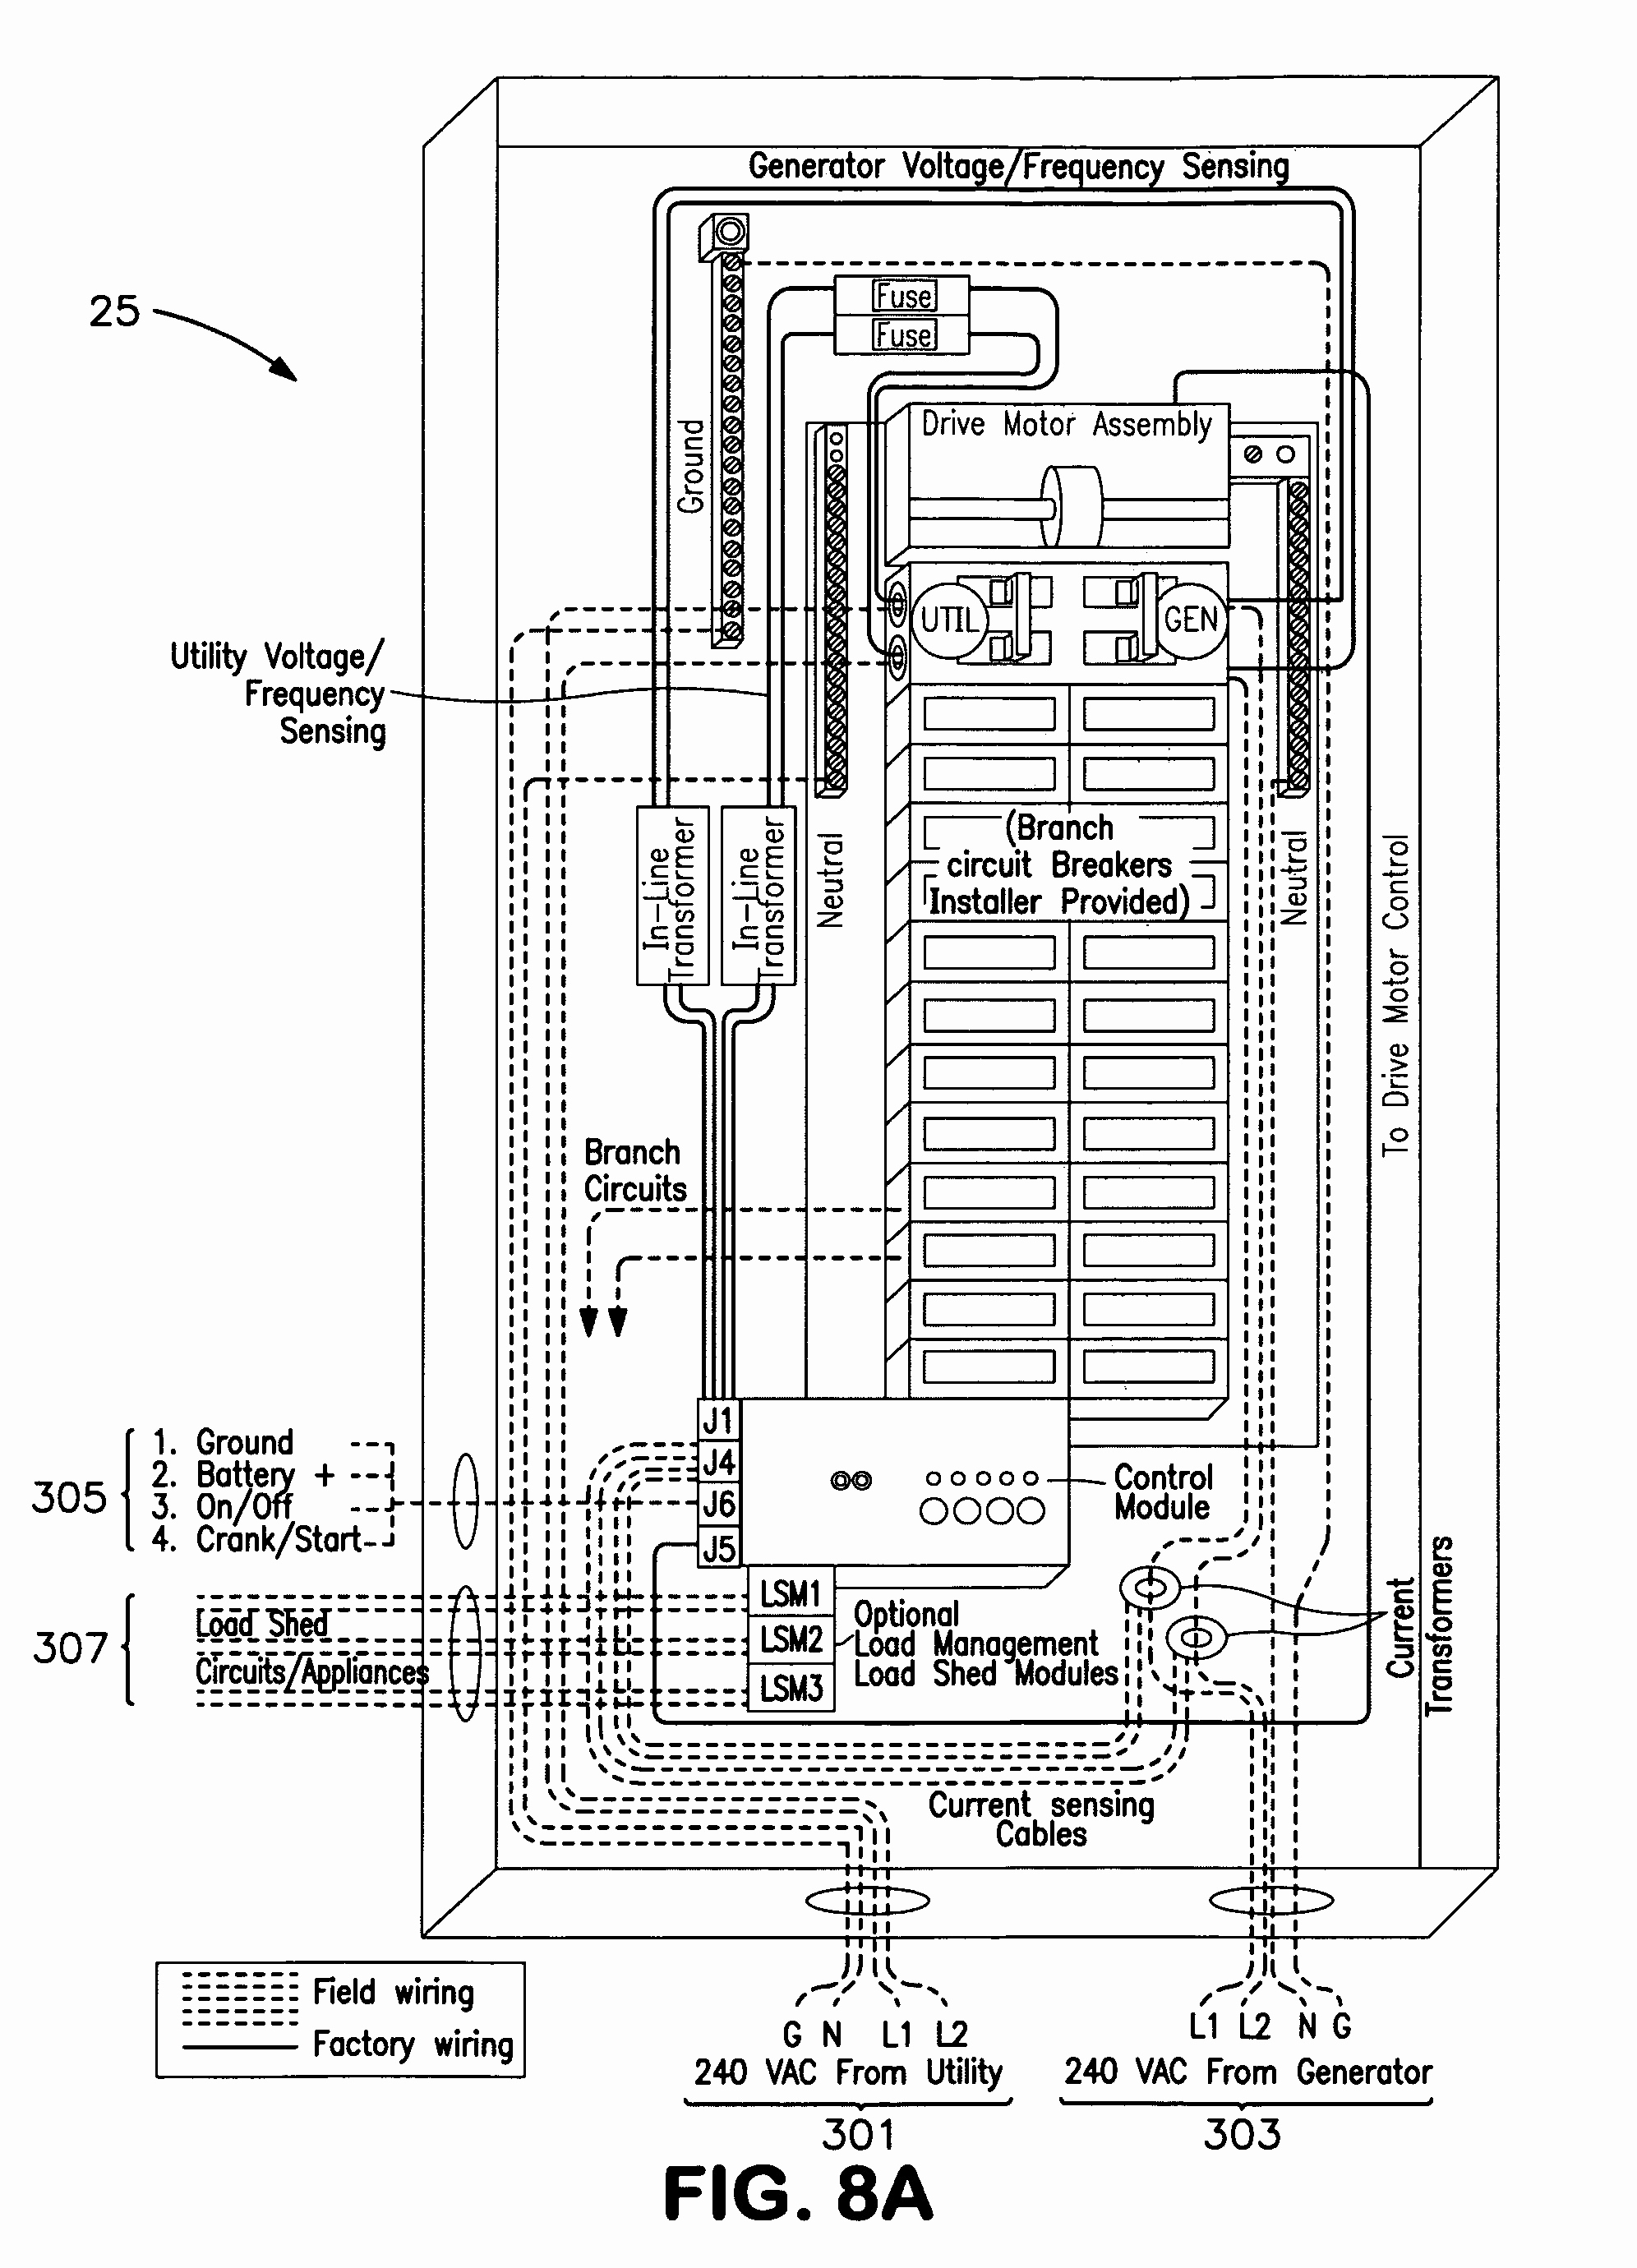 generac ats wiring diagram Download-Generac Automatic Transfer Switch Wiring Diagram for Generac Automatic Transfer Switch Wiring Diagram Elegant Amazing 11-m